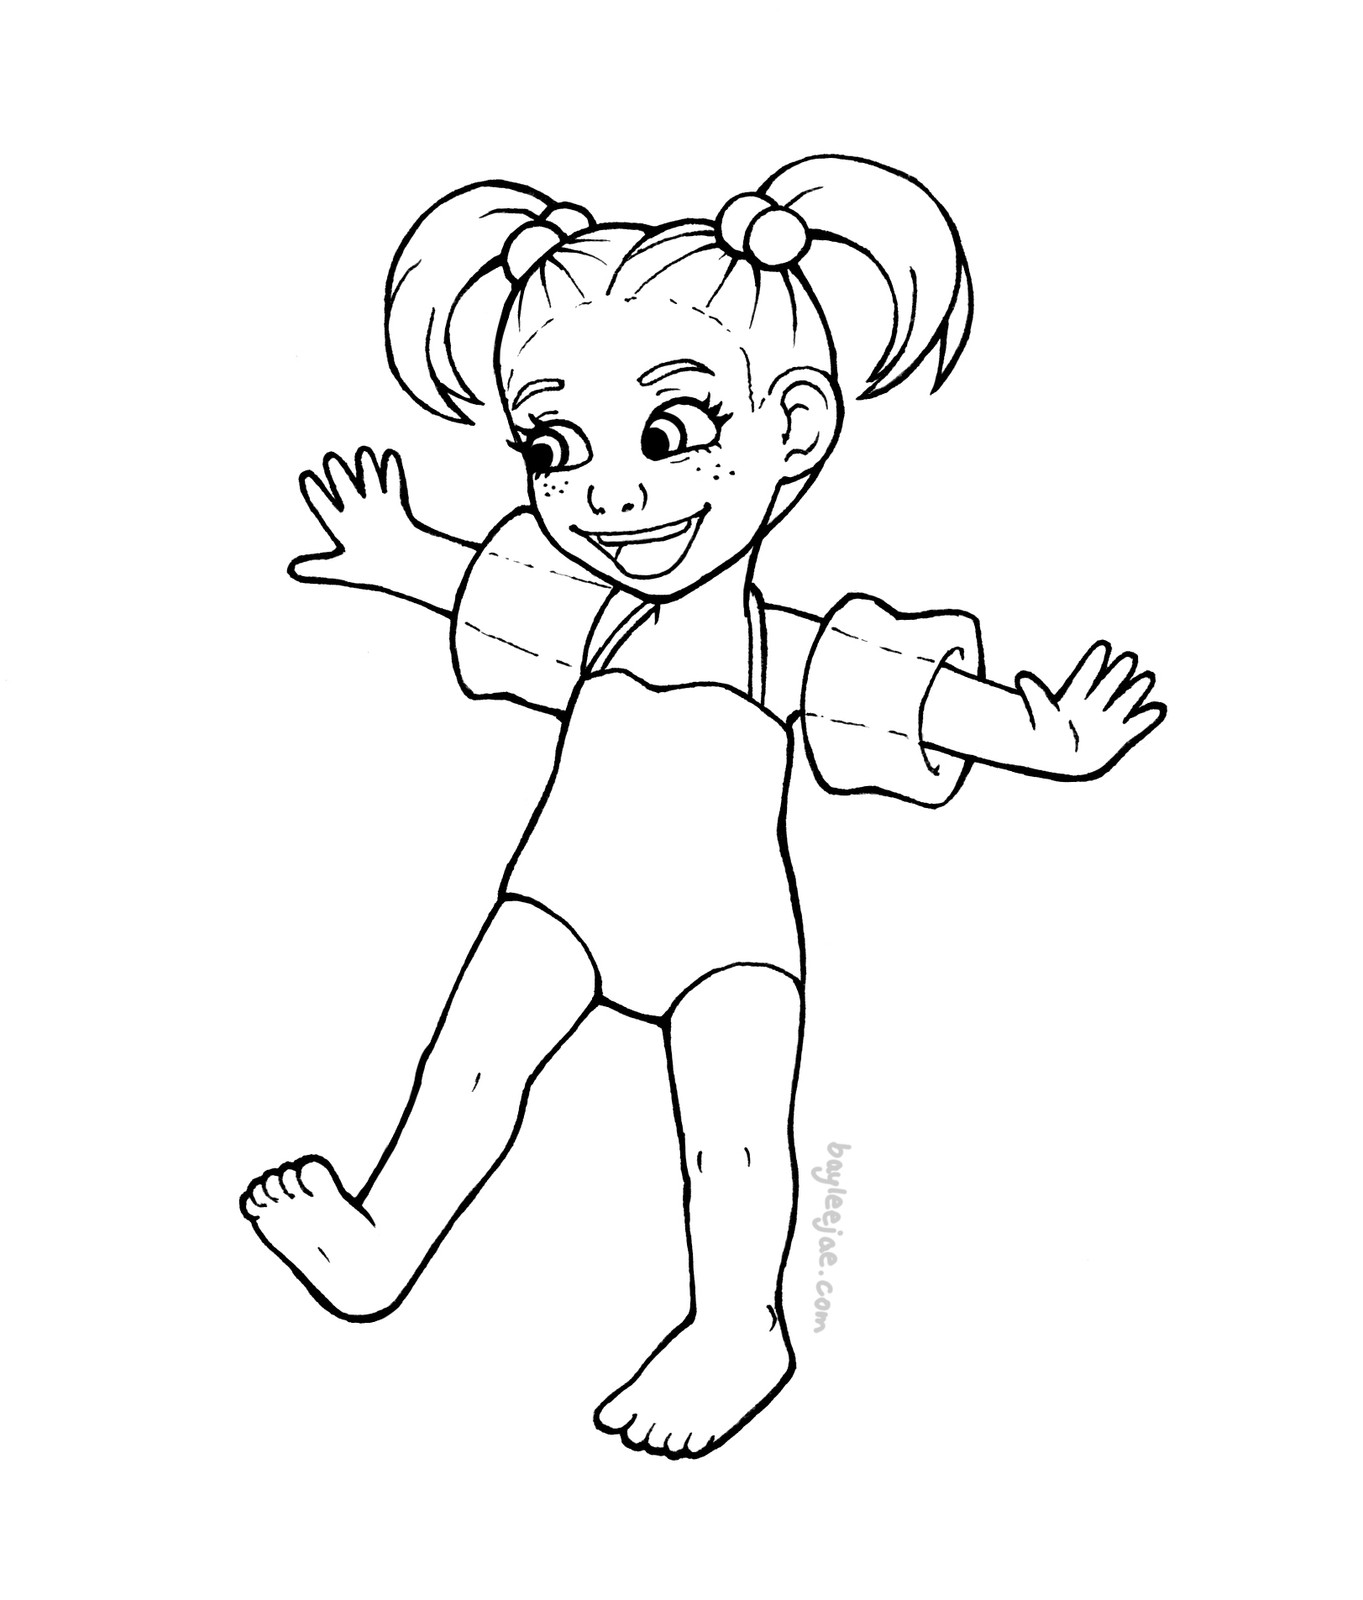 baylee jae coloring pages - photo#21